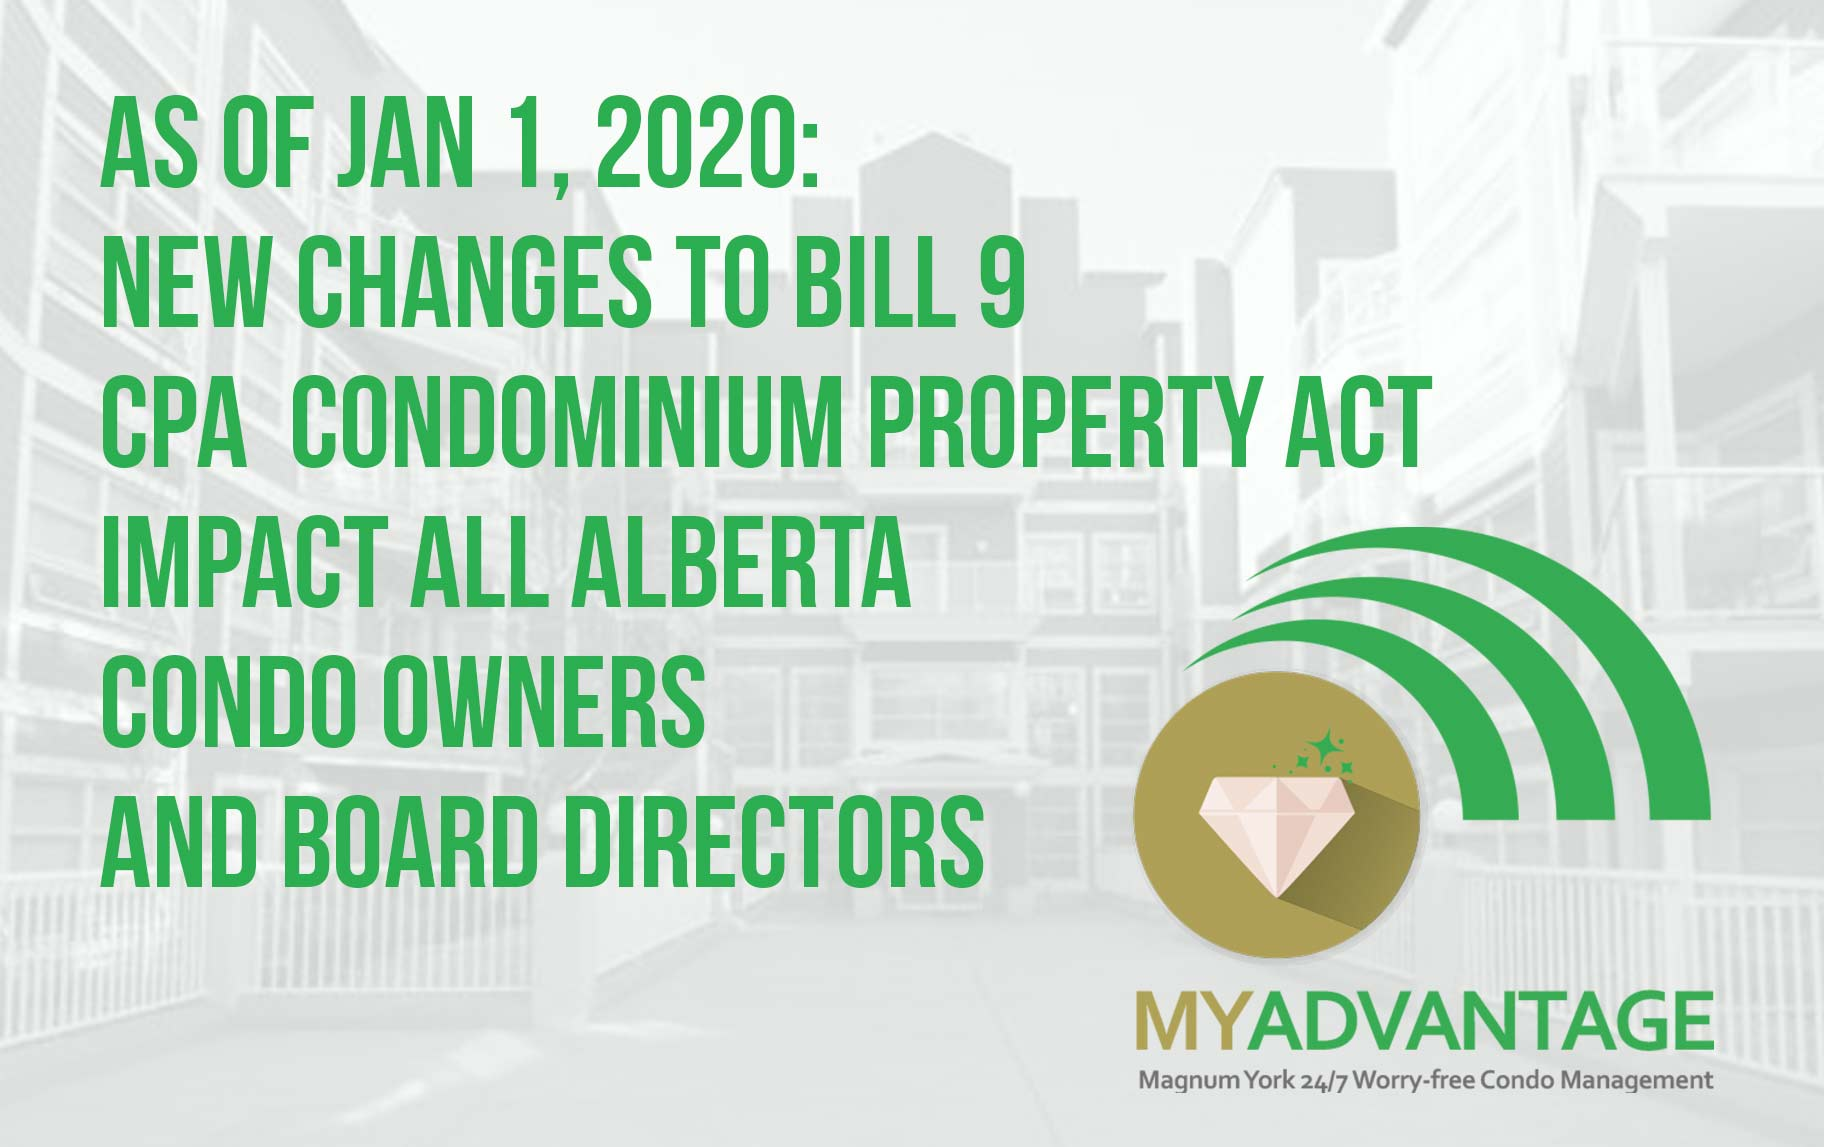 Condominium Protect Act Bill 9 CPA Jan 1 2020 changes impact all Alberta Condo owner and board directors Magnum York